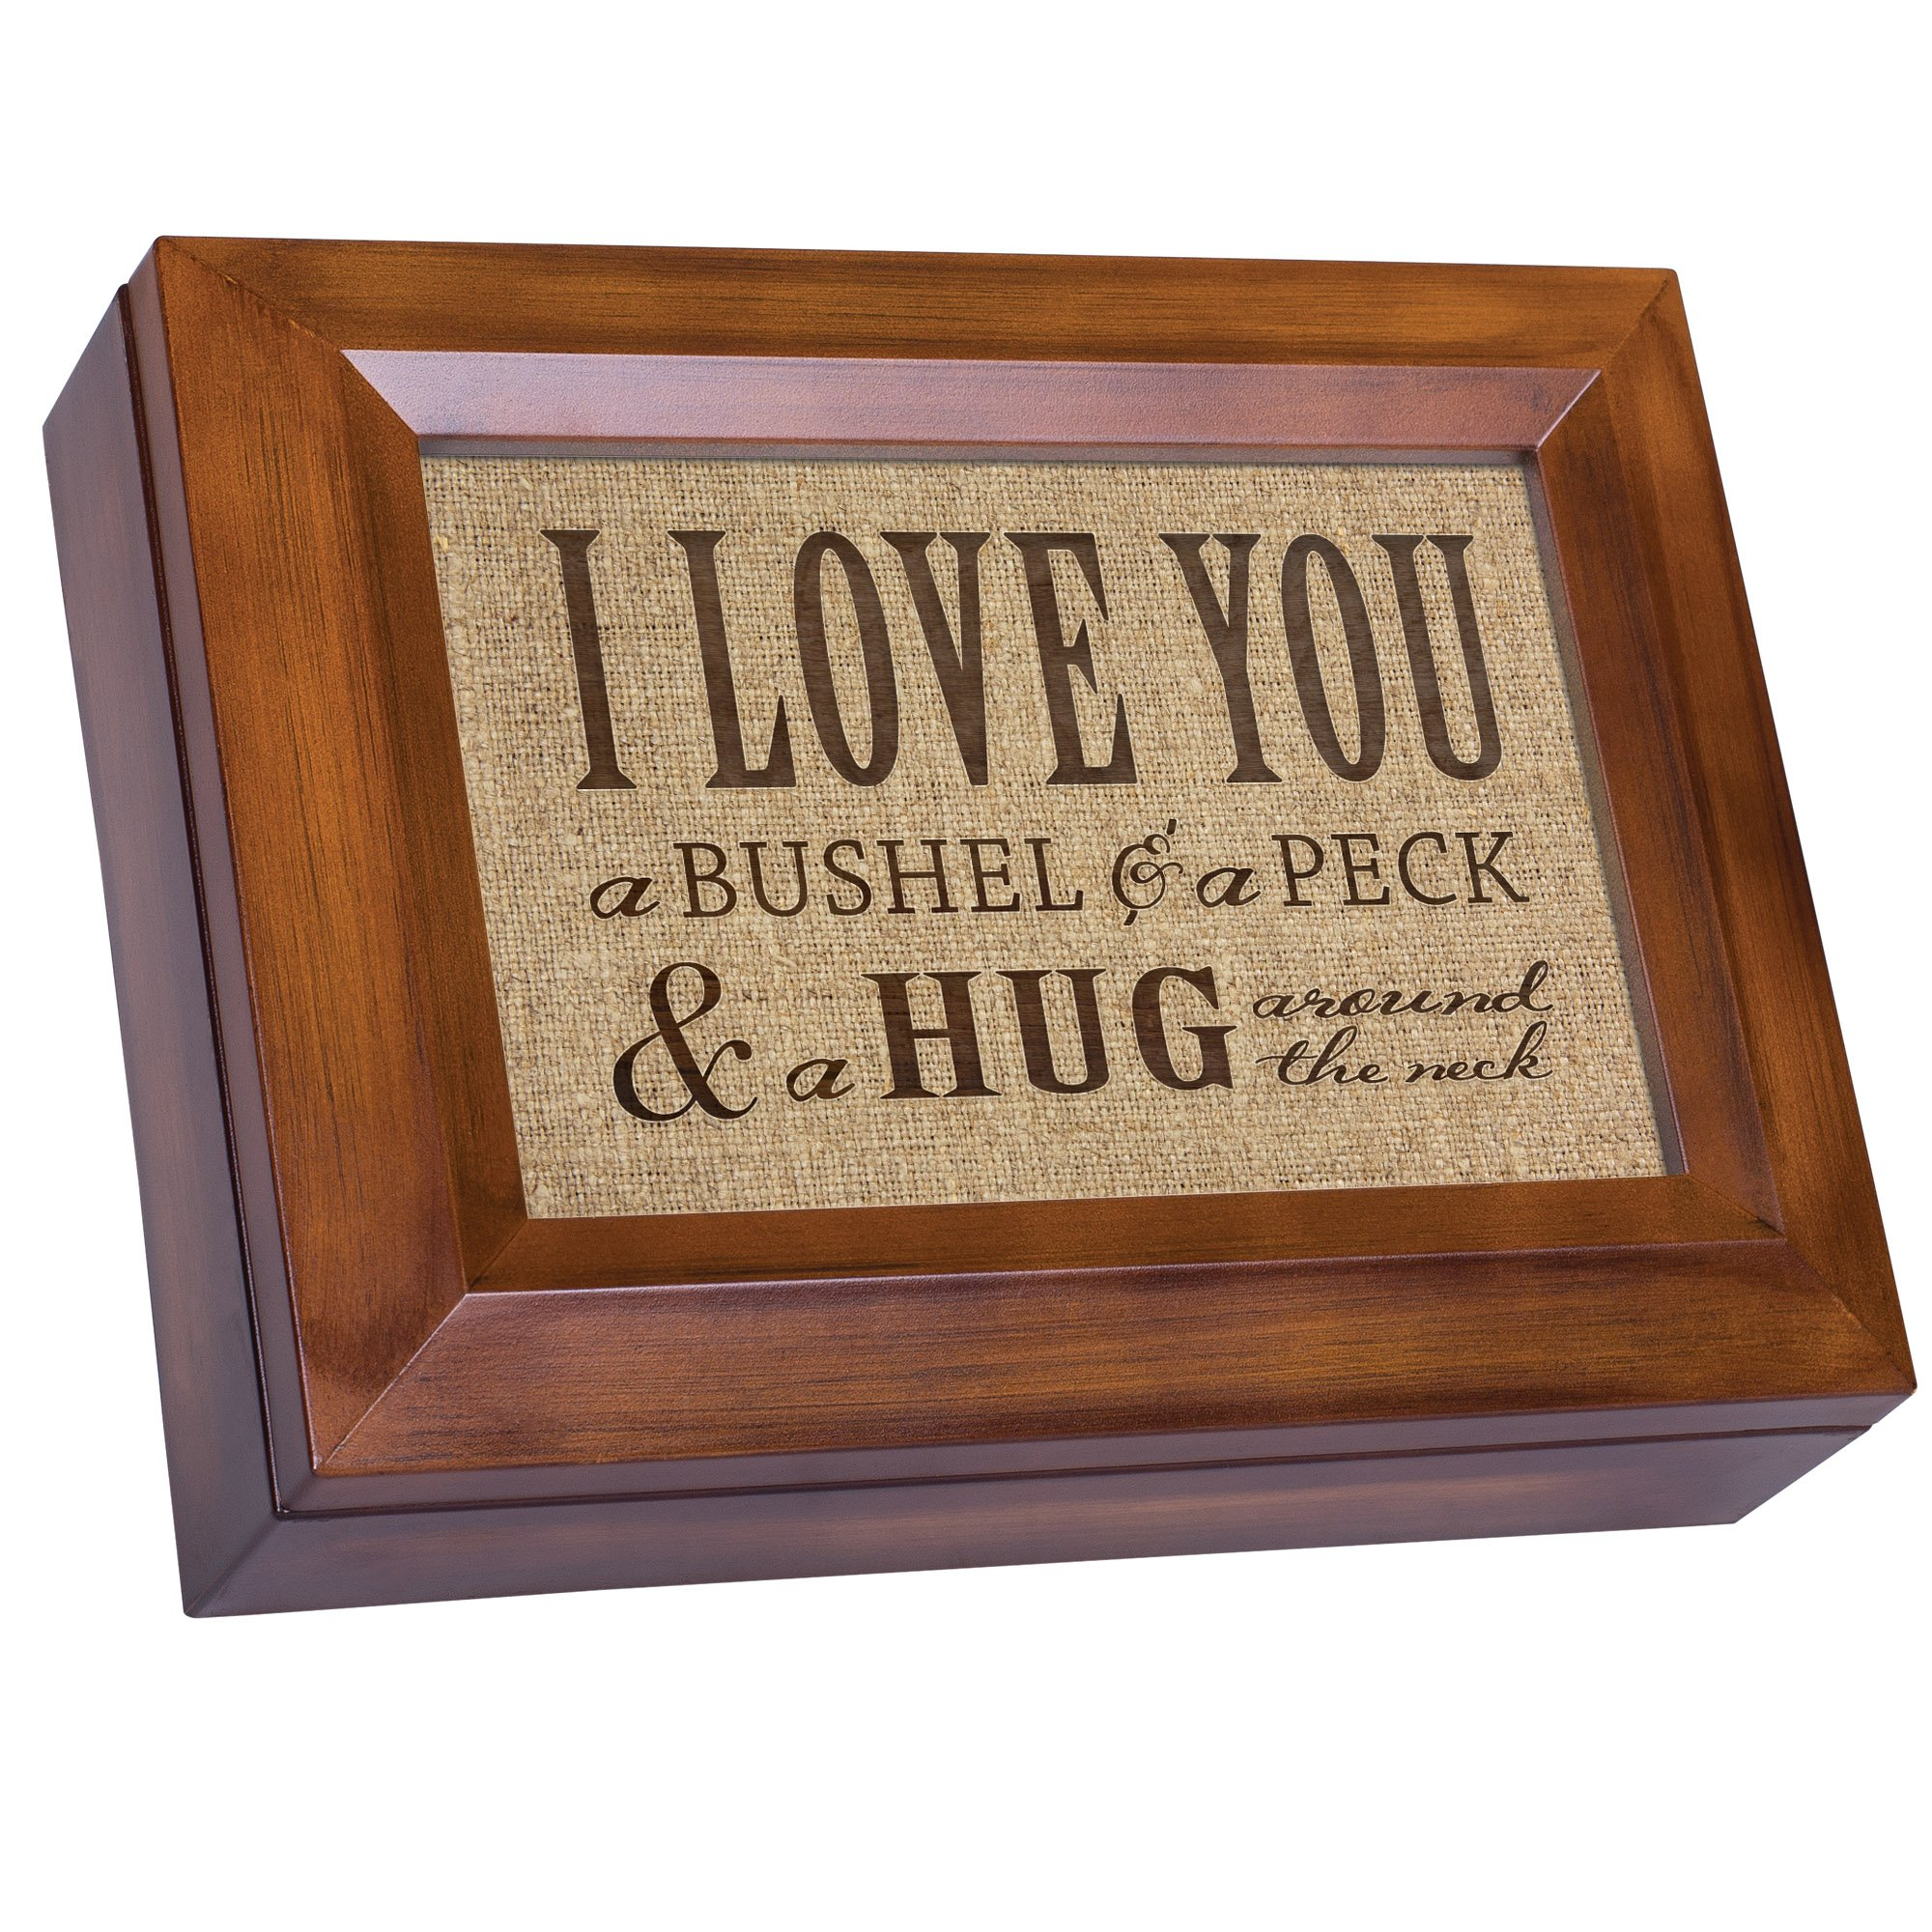 I Love You A Bushel & A Peck Wood Finish Jewelry Music Box - Plays Tune You Are My Sunshine by Cottage Garden